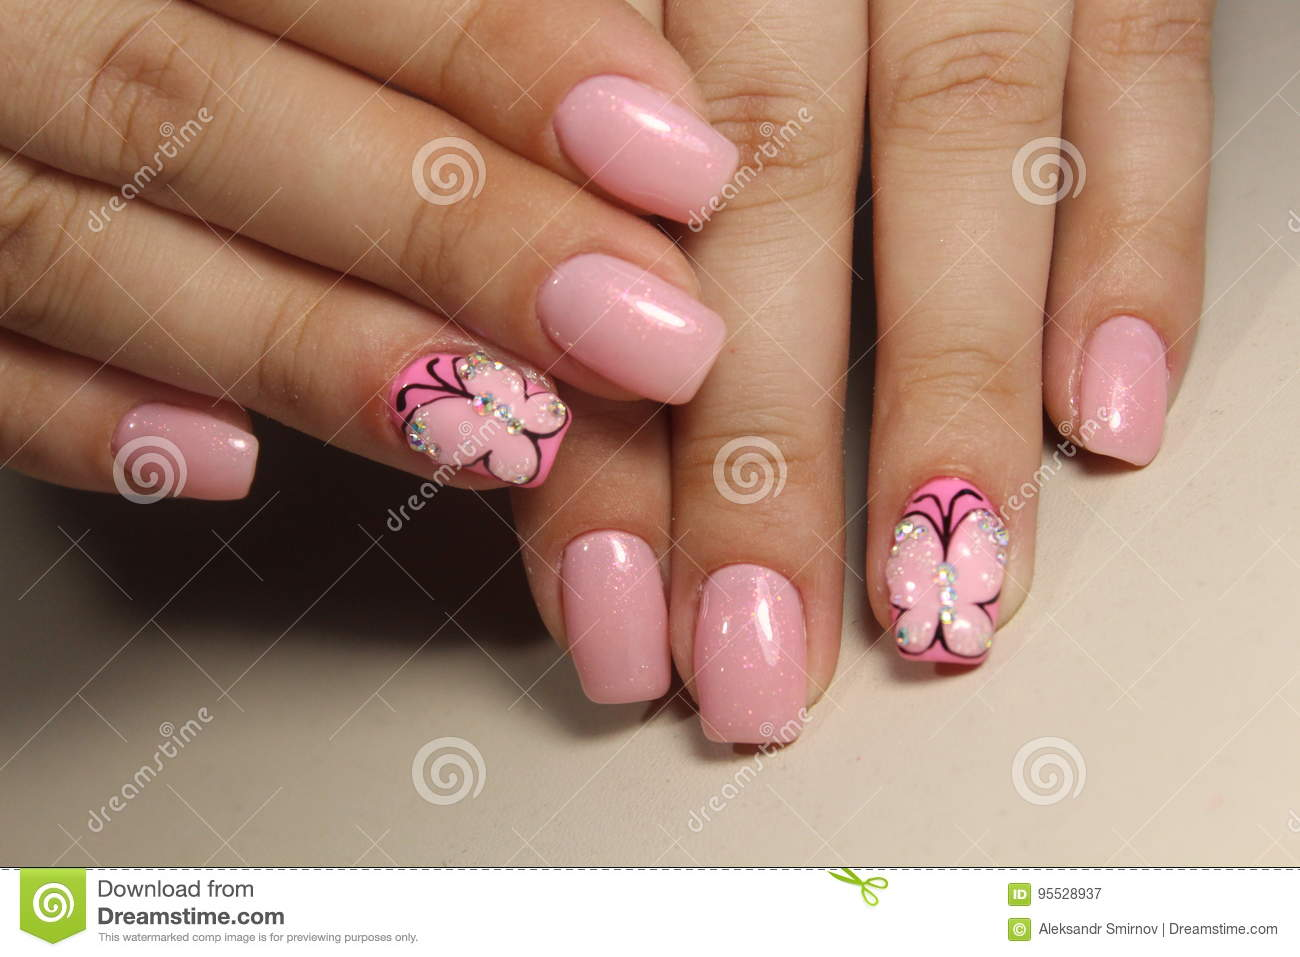 Manicure nail design with a butterfly pattern